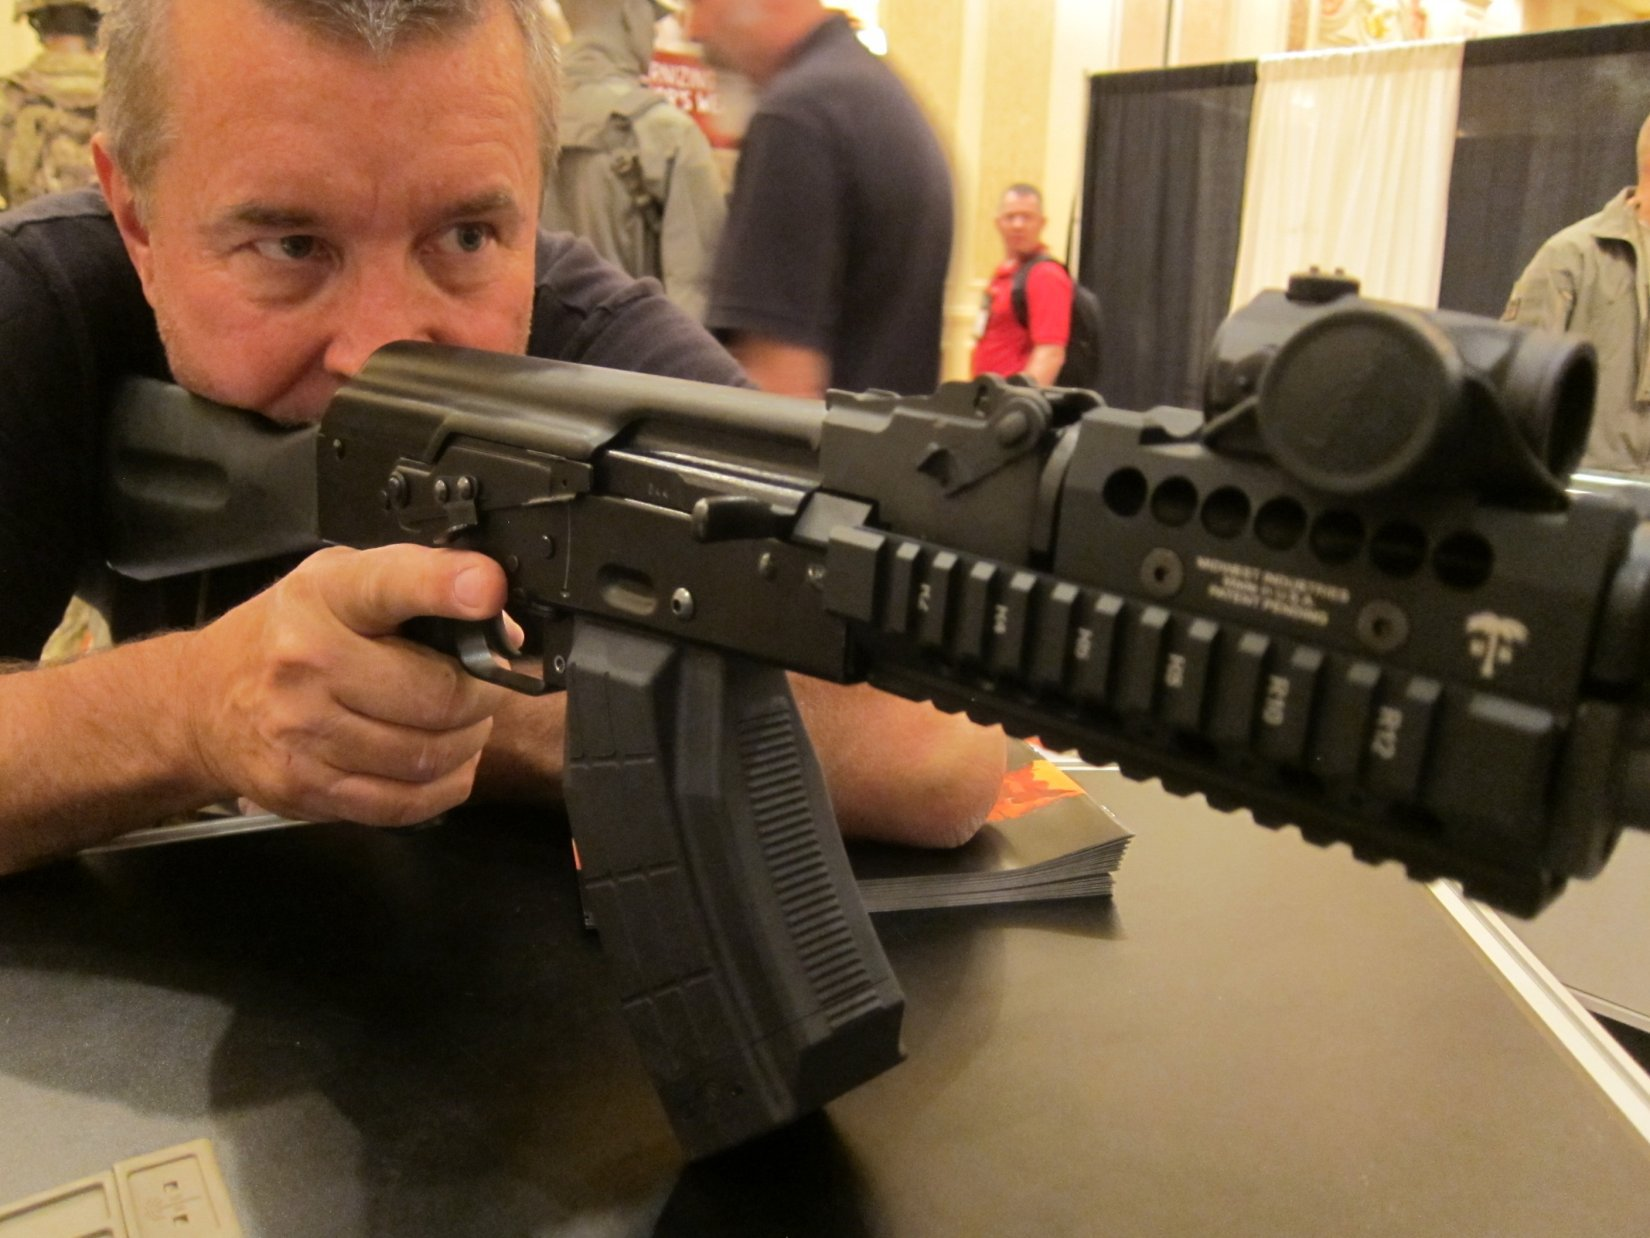 US PALM Takedown/Breakdown AK (Kalashnikov AK-47/AKM Rifle/Carbine) with US PALM/Midwest Industries MI Rail Kit at SHOT Show 2012: Tactical, Practical and Backpackable AK for Military Special Operations and Civilian Tactical Shooters! (Video!)